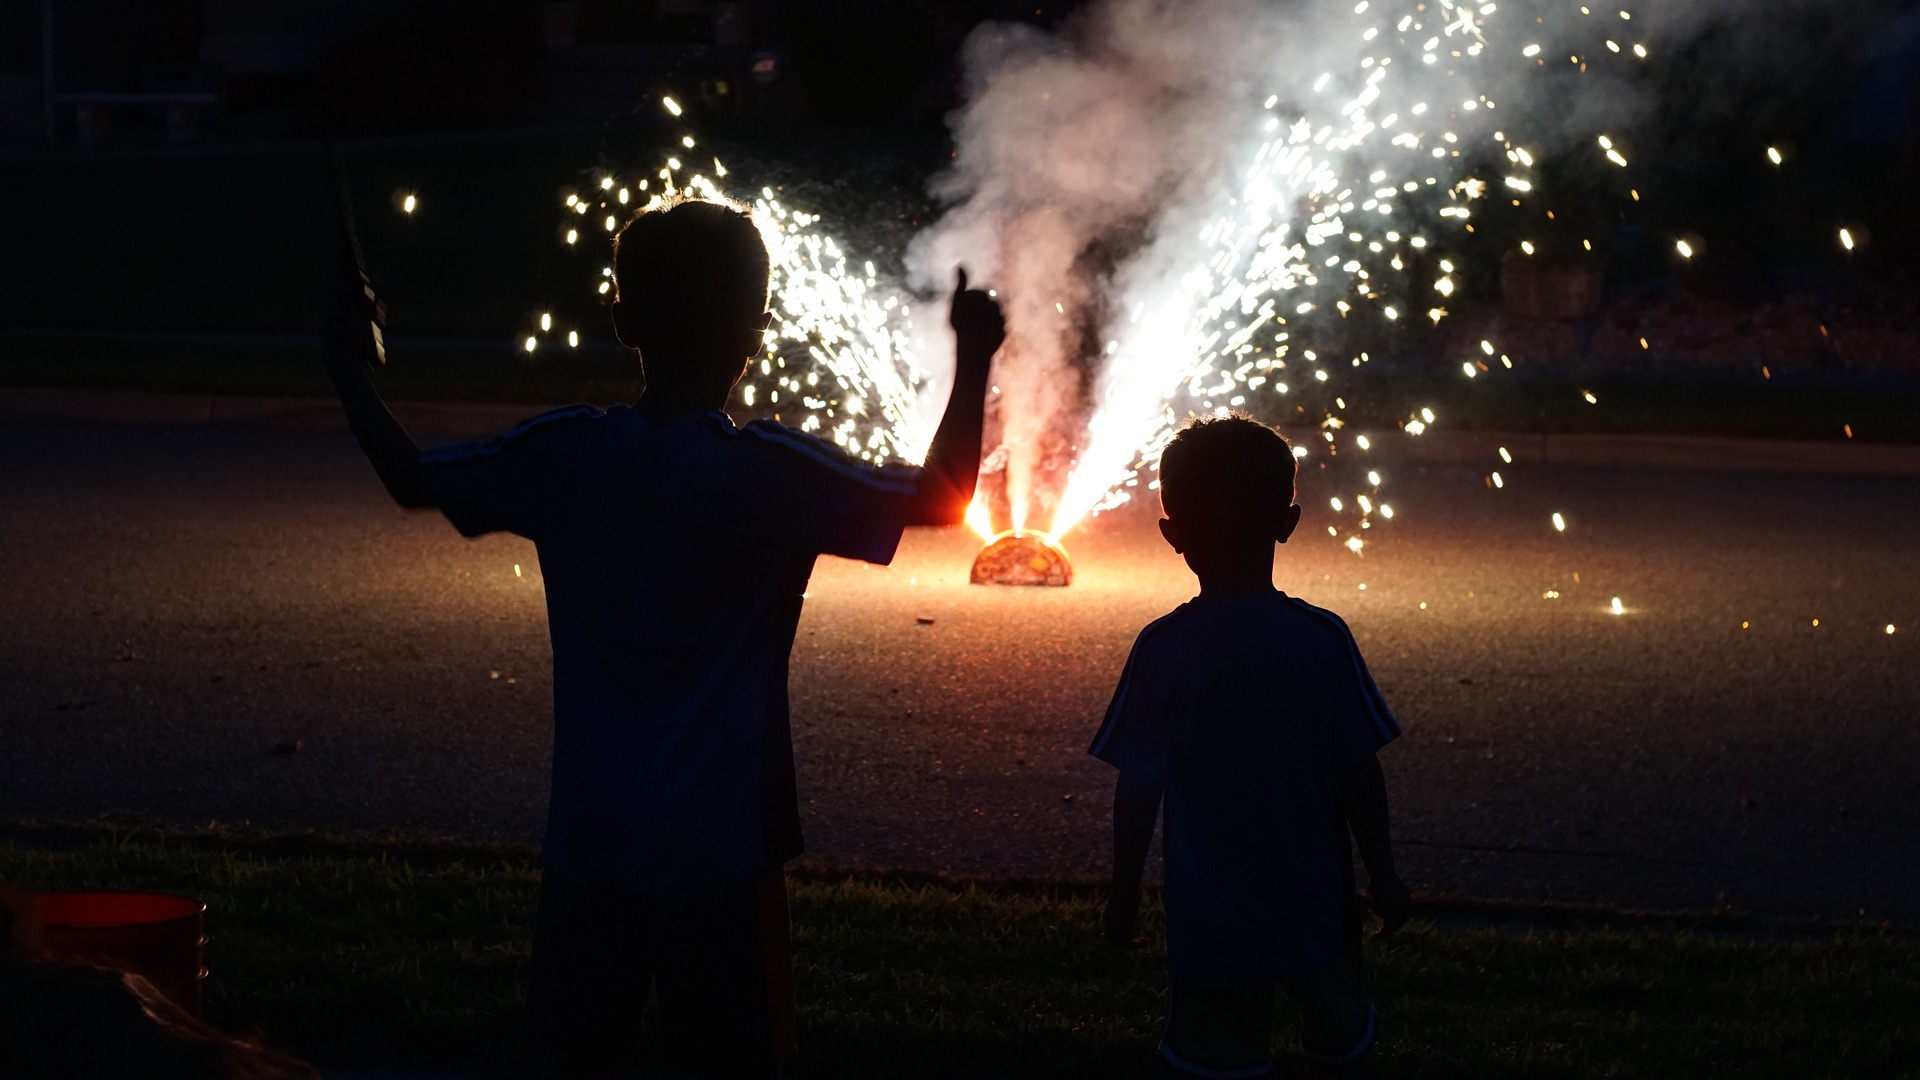 wildfire and fire safety fourth of july celebration fireworks